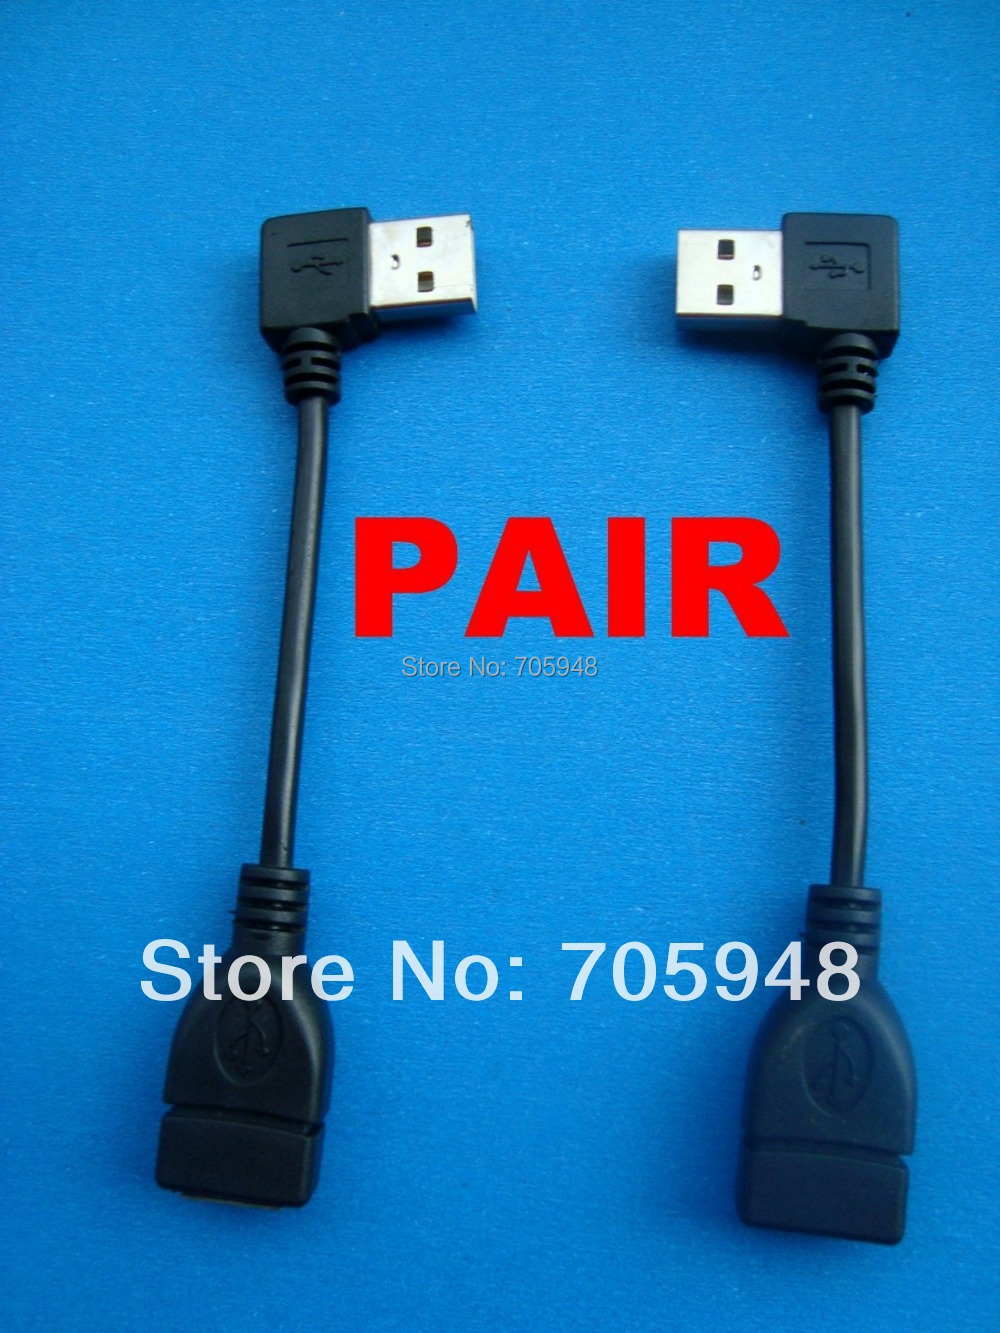 1 x pair right + left angled 90degree USB 2.0 A Male to Female adapter extension cable